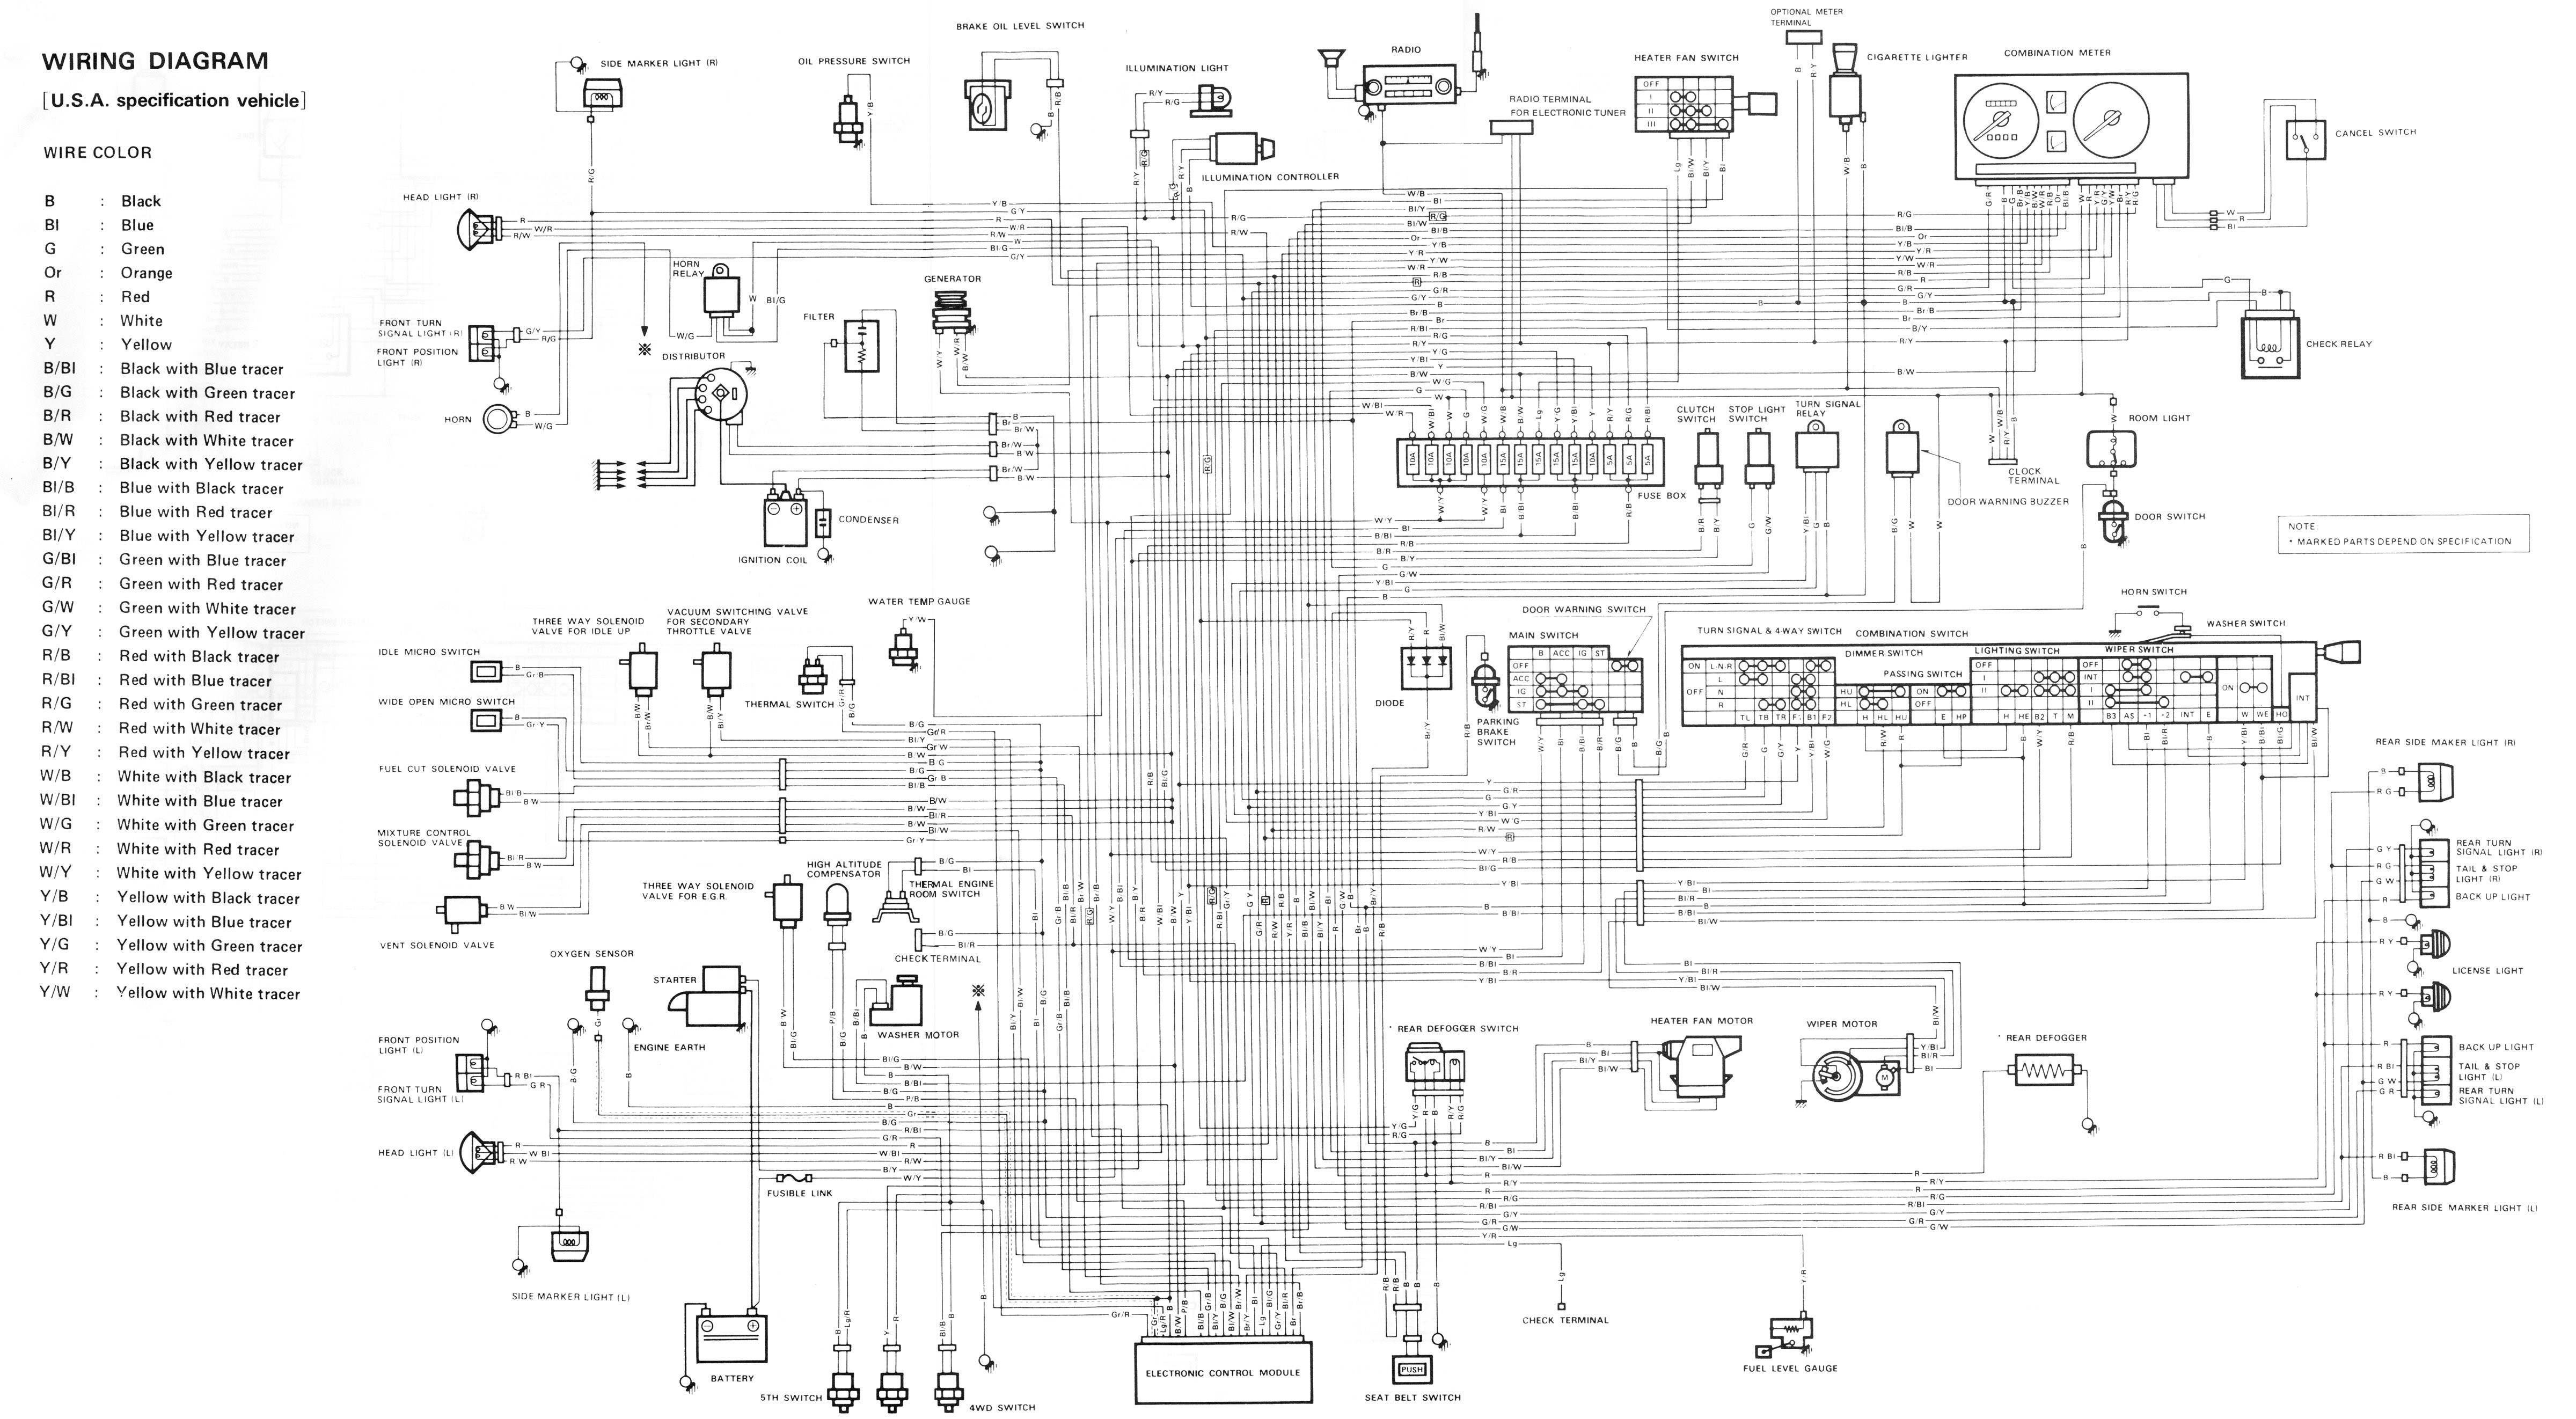 95 Sidekick Fuse Box Diagram Suzuki Schematic Diagram Data